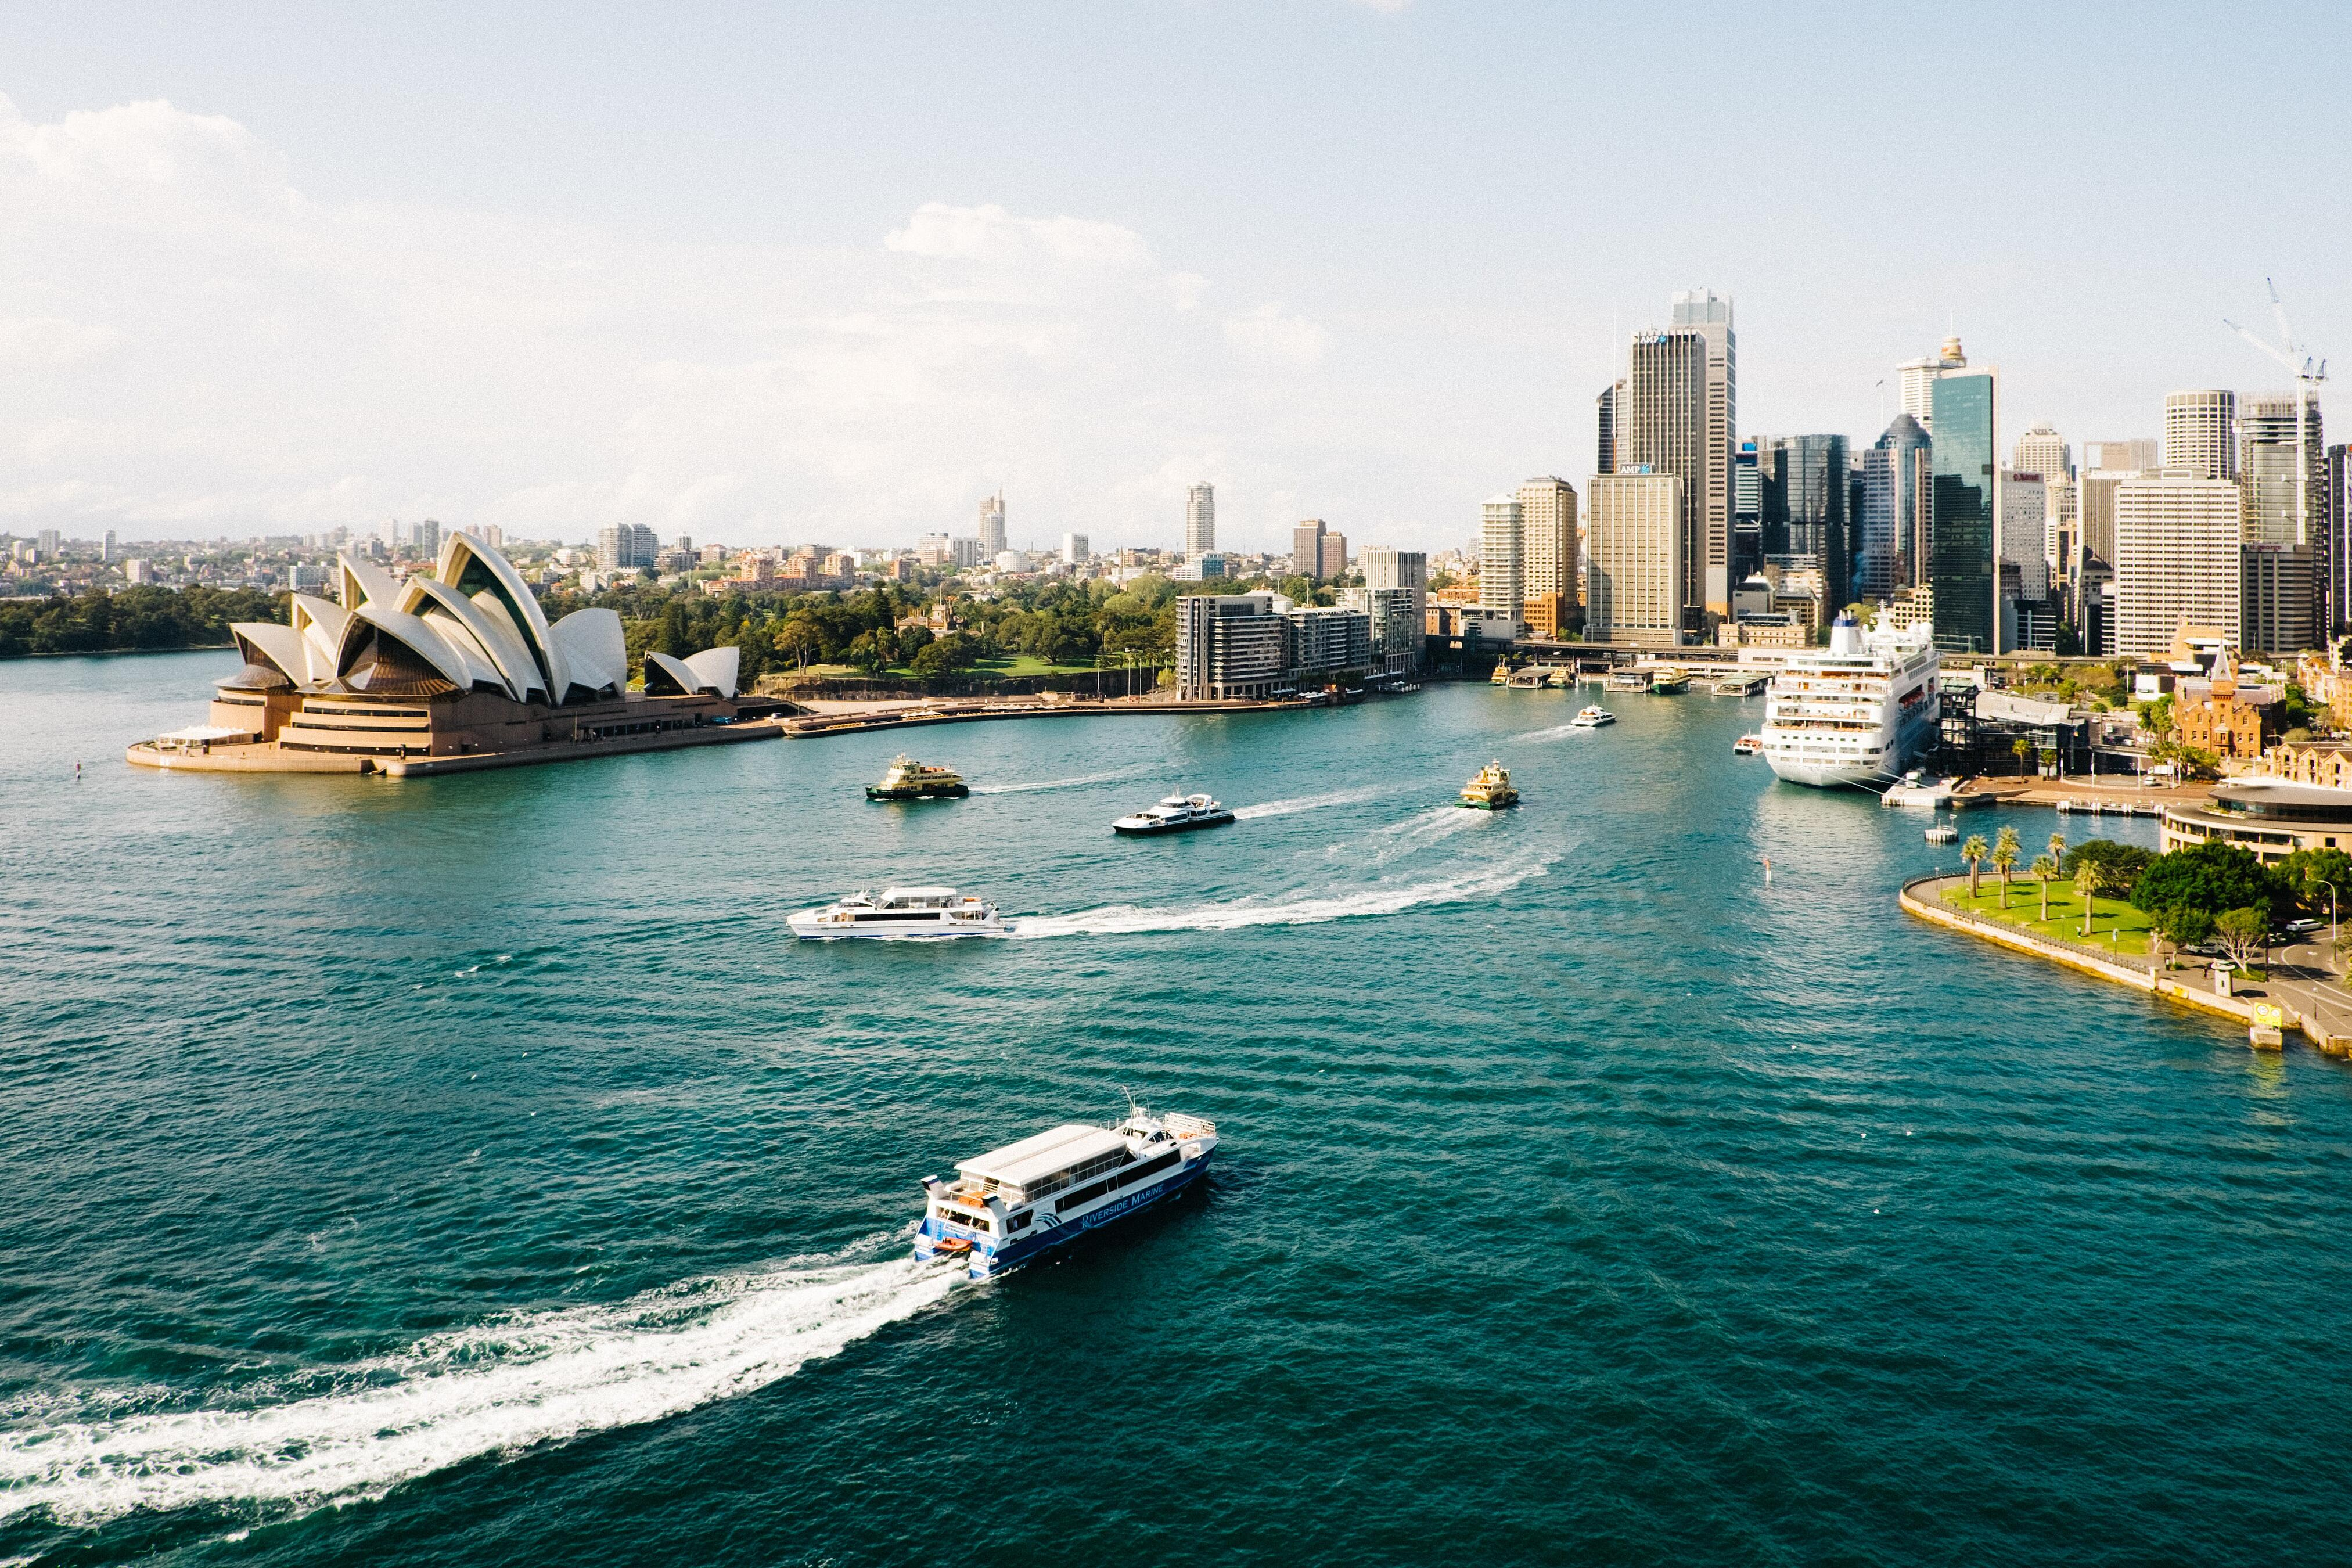 picture of sydney, australia from the bay